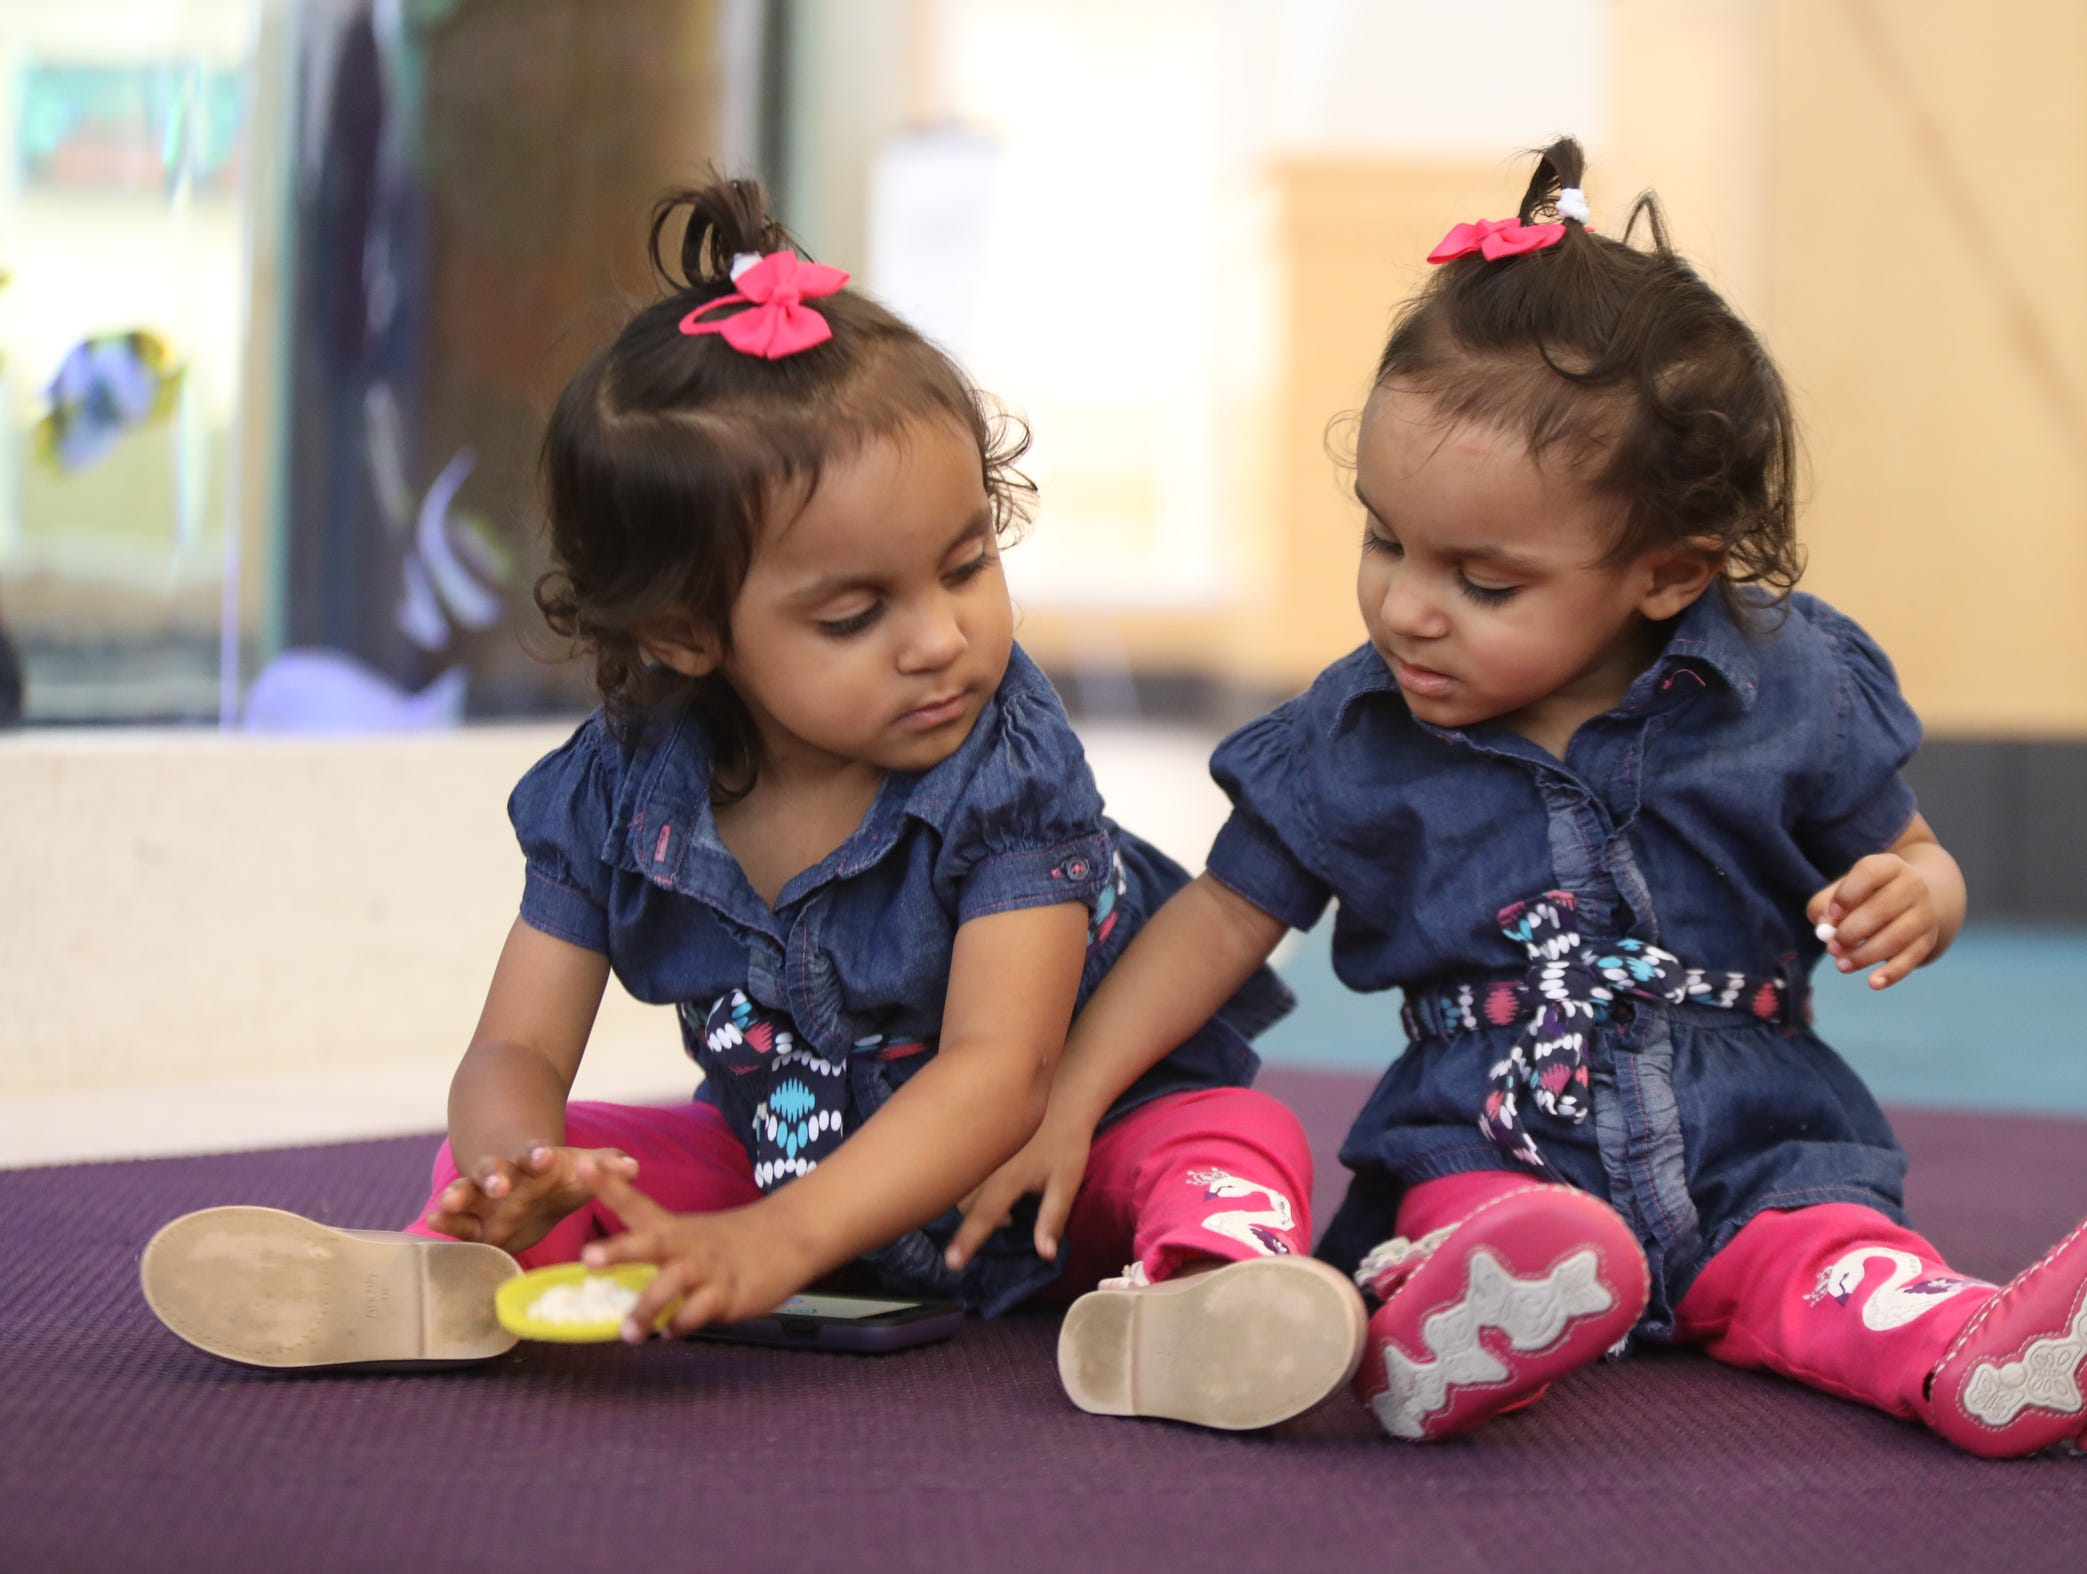 Former conjoined twins, Bellanie and Ballenie Camacho, celebrate a milestone during a news conference at Maria Fareri Children's Hospital in Valhalla on Friday, July 13, 2018.